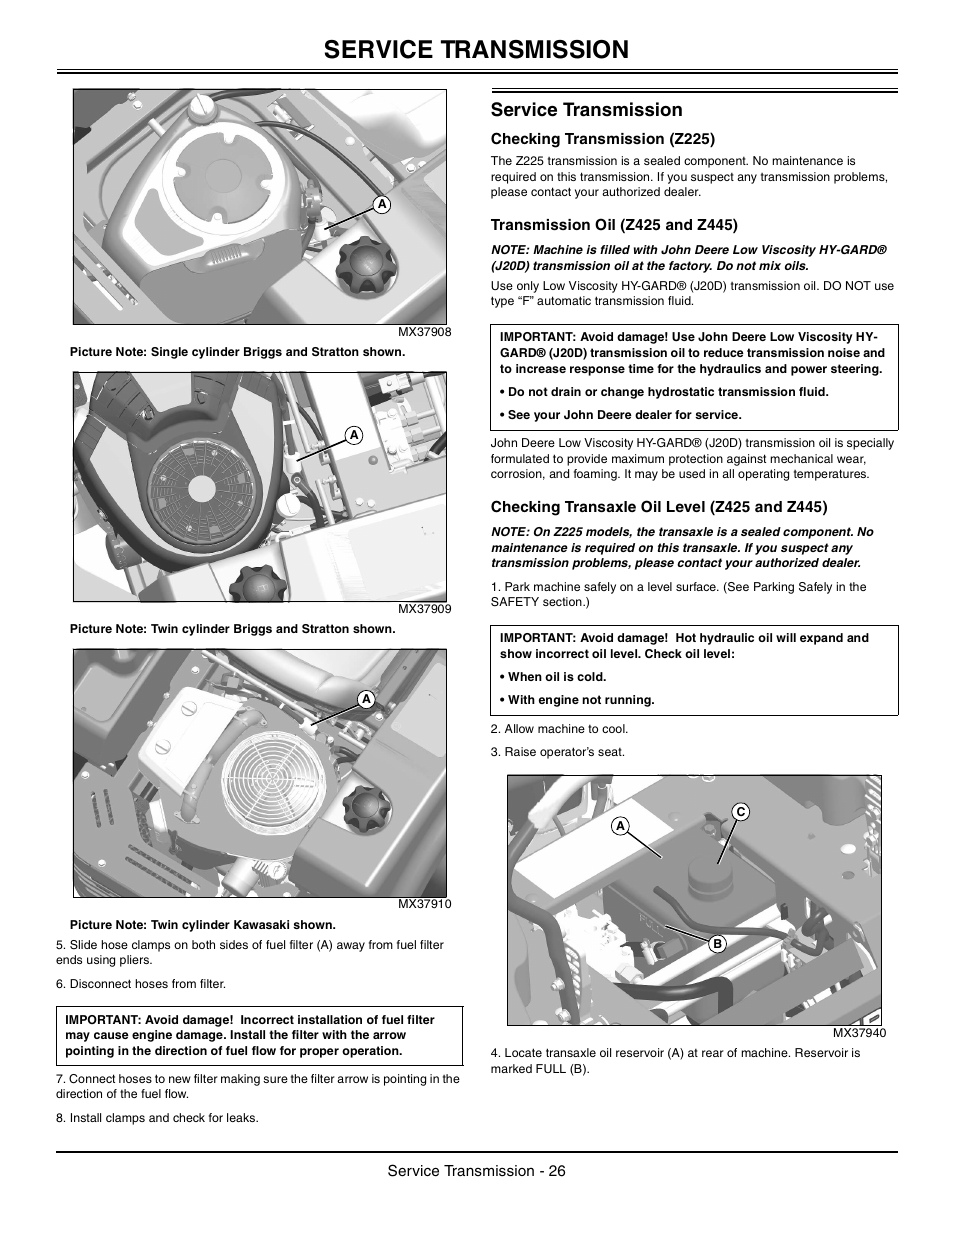 Service Transmission Checking Z225 Oil. Service Transmission Checking Z225 Oil Z425 And Z445 John Deere User Manual Page 27 48. John Deere. John Deere Z445 Zero Turn Transmission Diagram At Scoala.co